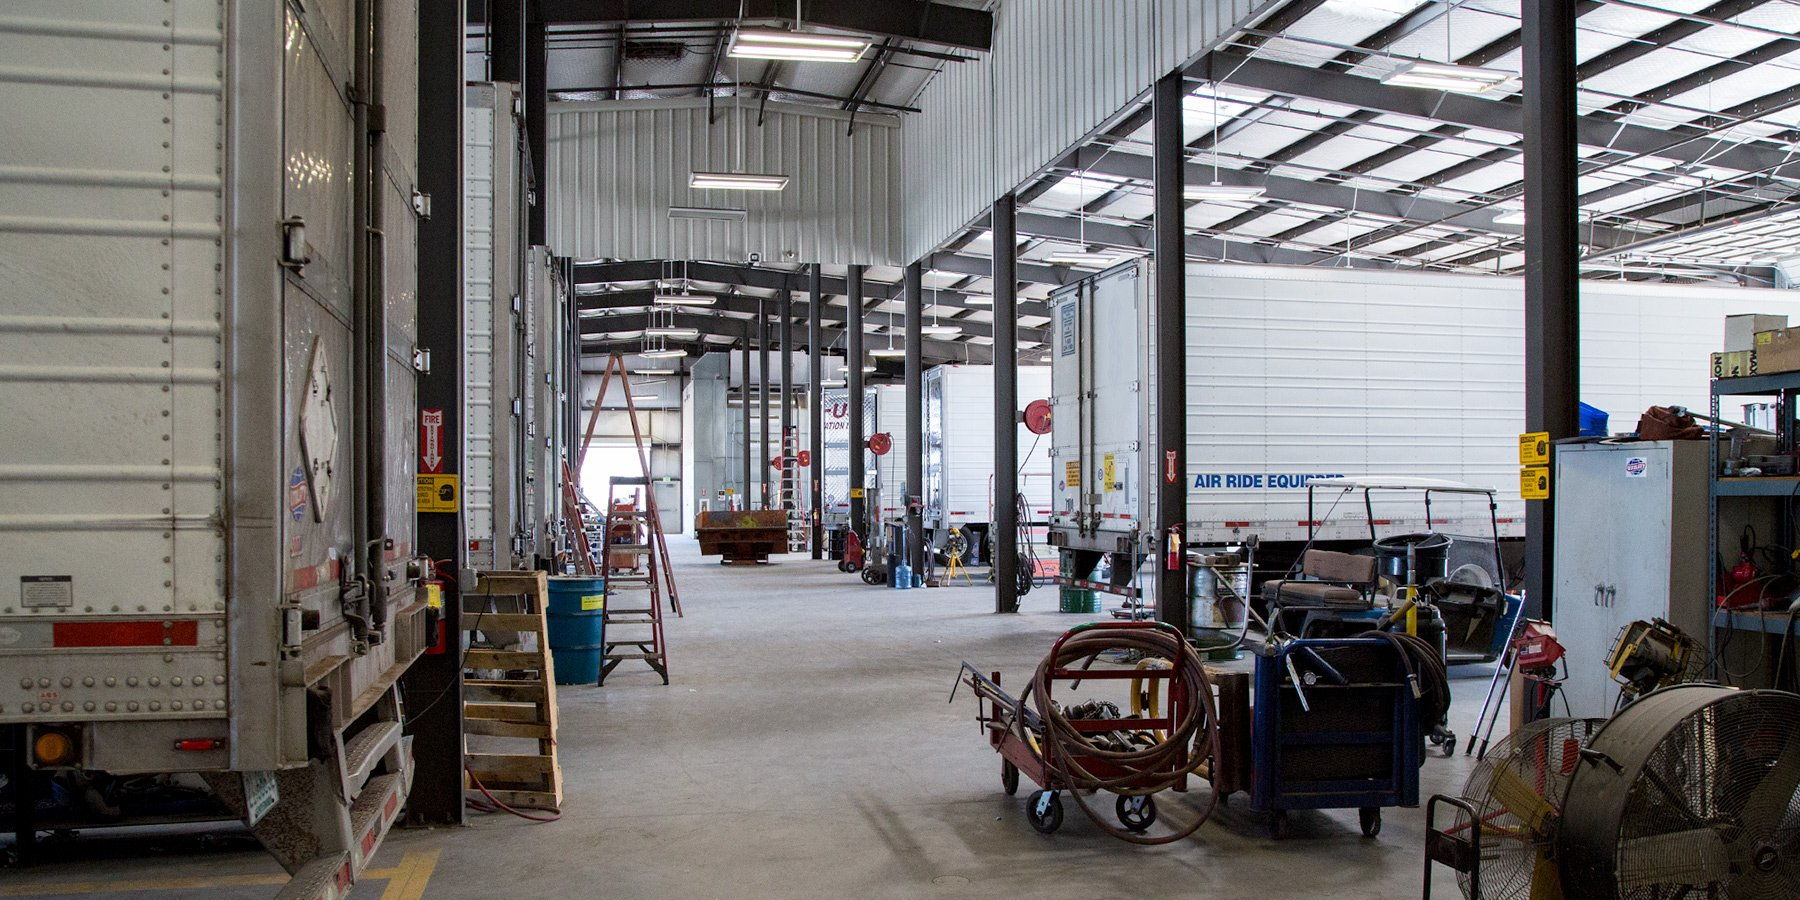 Fully equiped trailer repair and maintenance bays